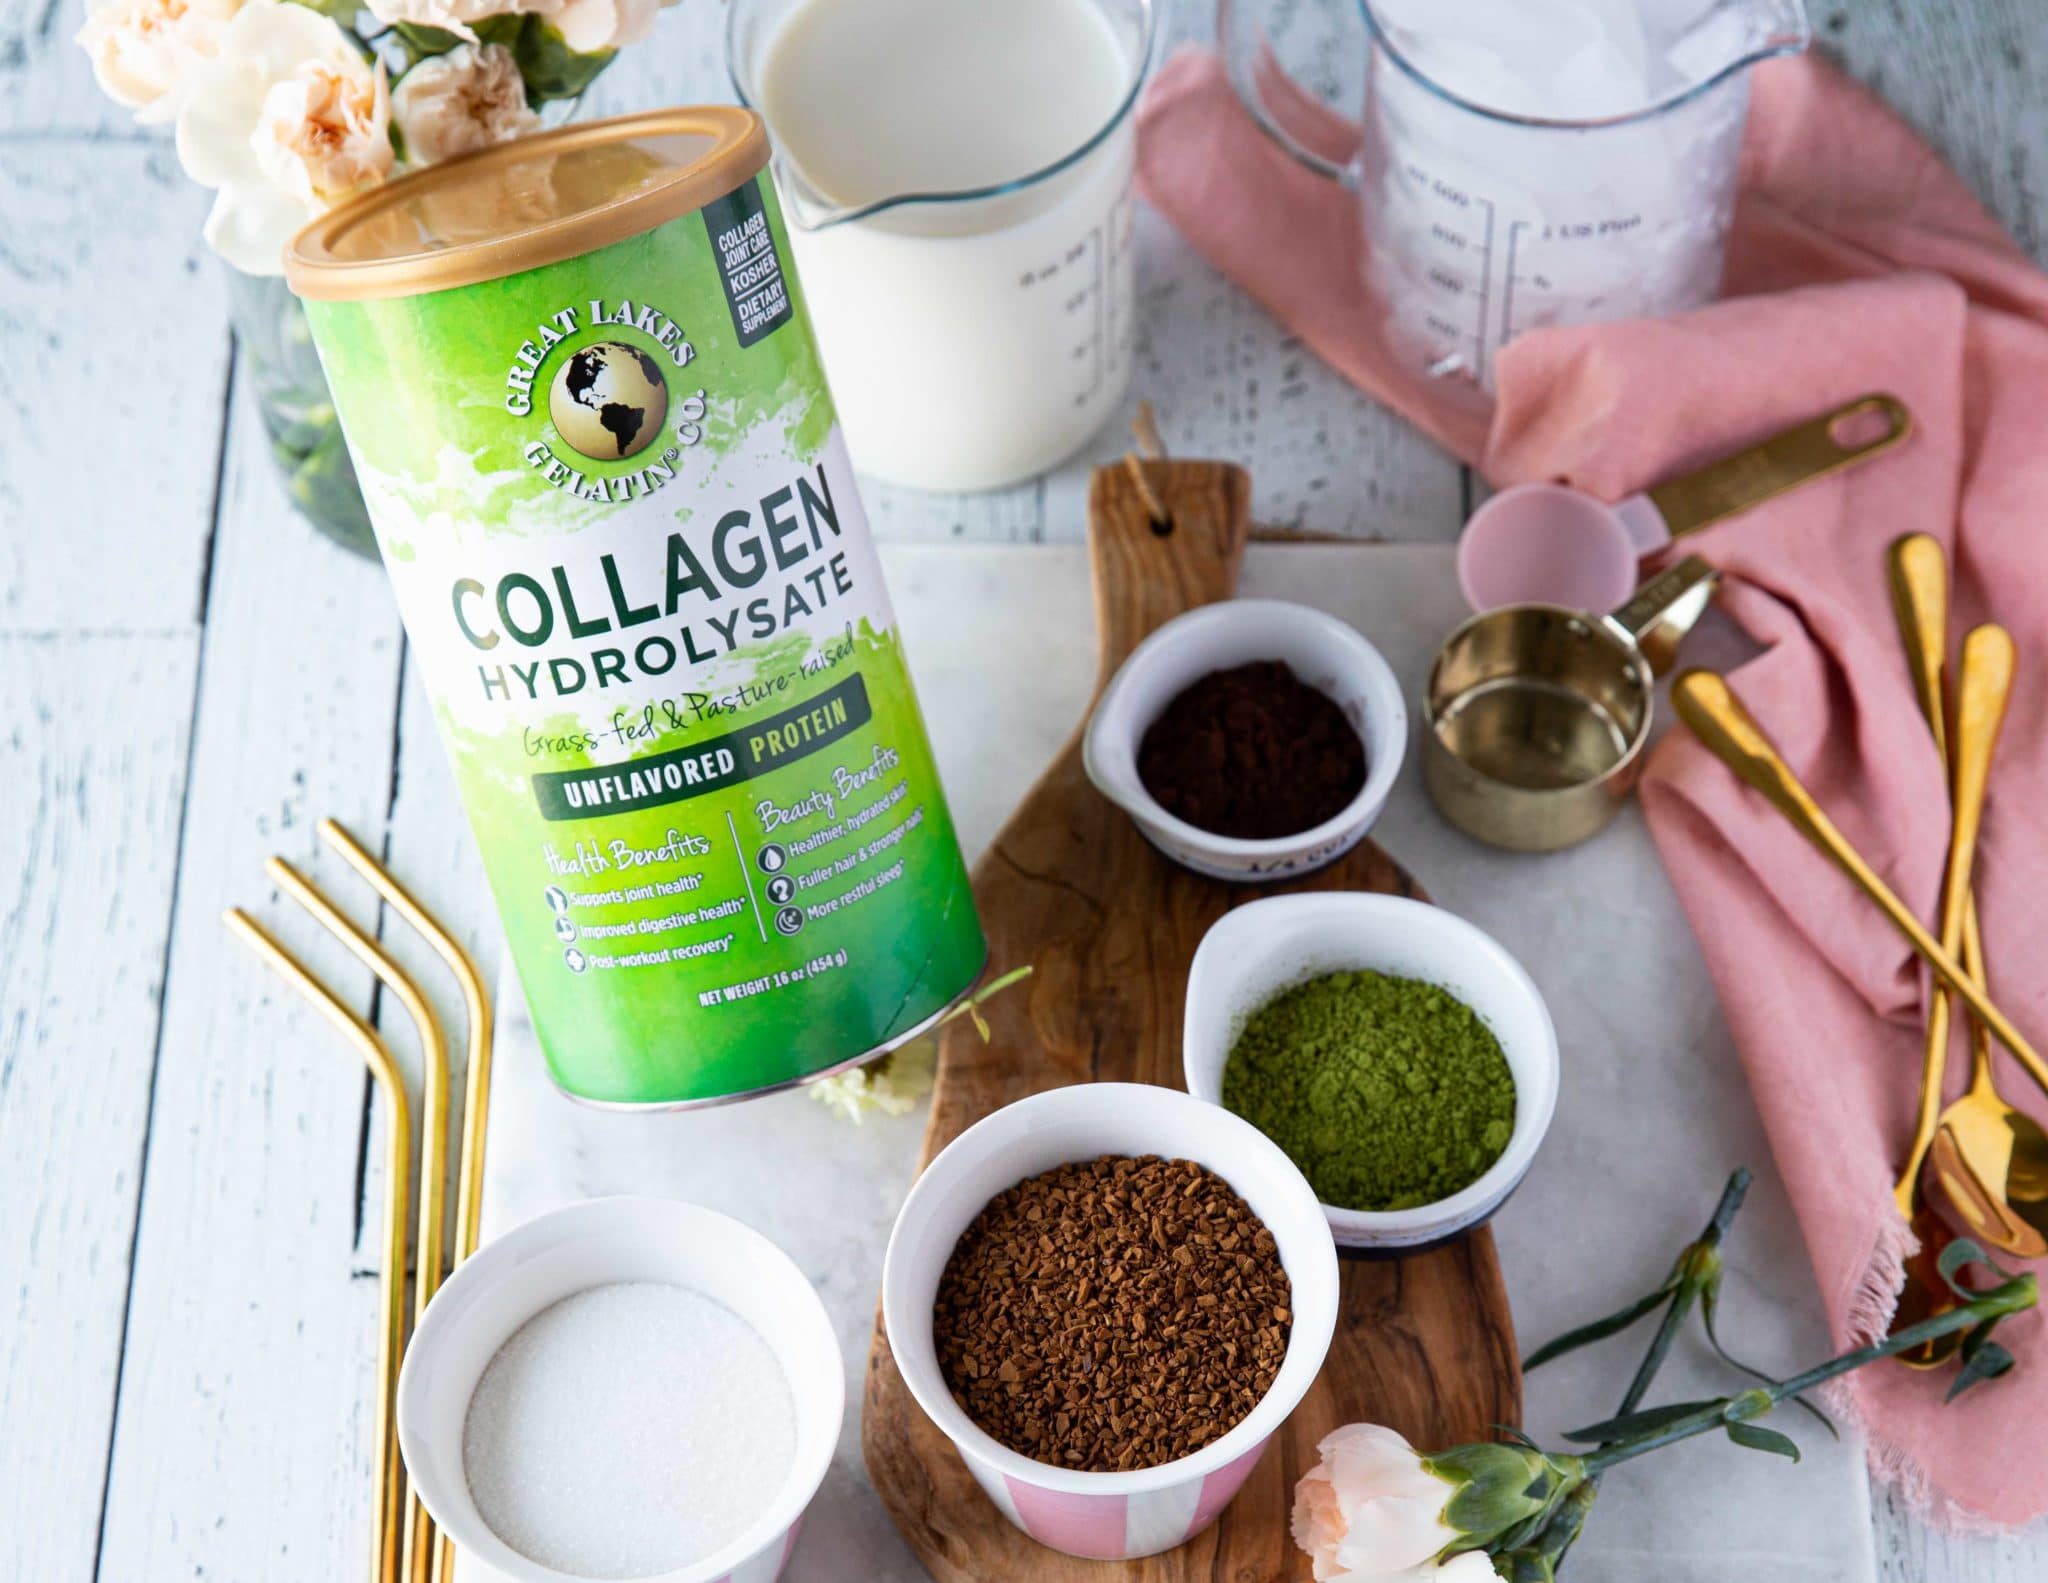 Ingredients for the whipped coffee recipe, the instant coffee in a cup, the sugar in a cp, the hot water, the cold milk, the ice, the matcha powder, the cocoa powder, collagen powder in a cup